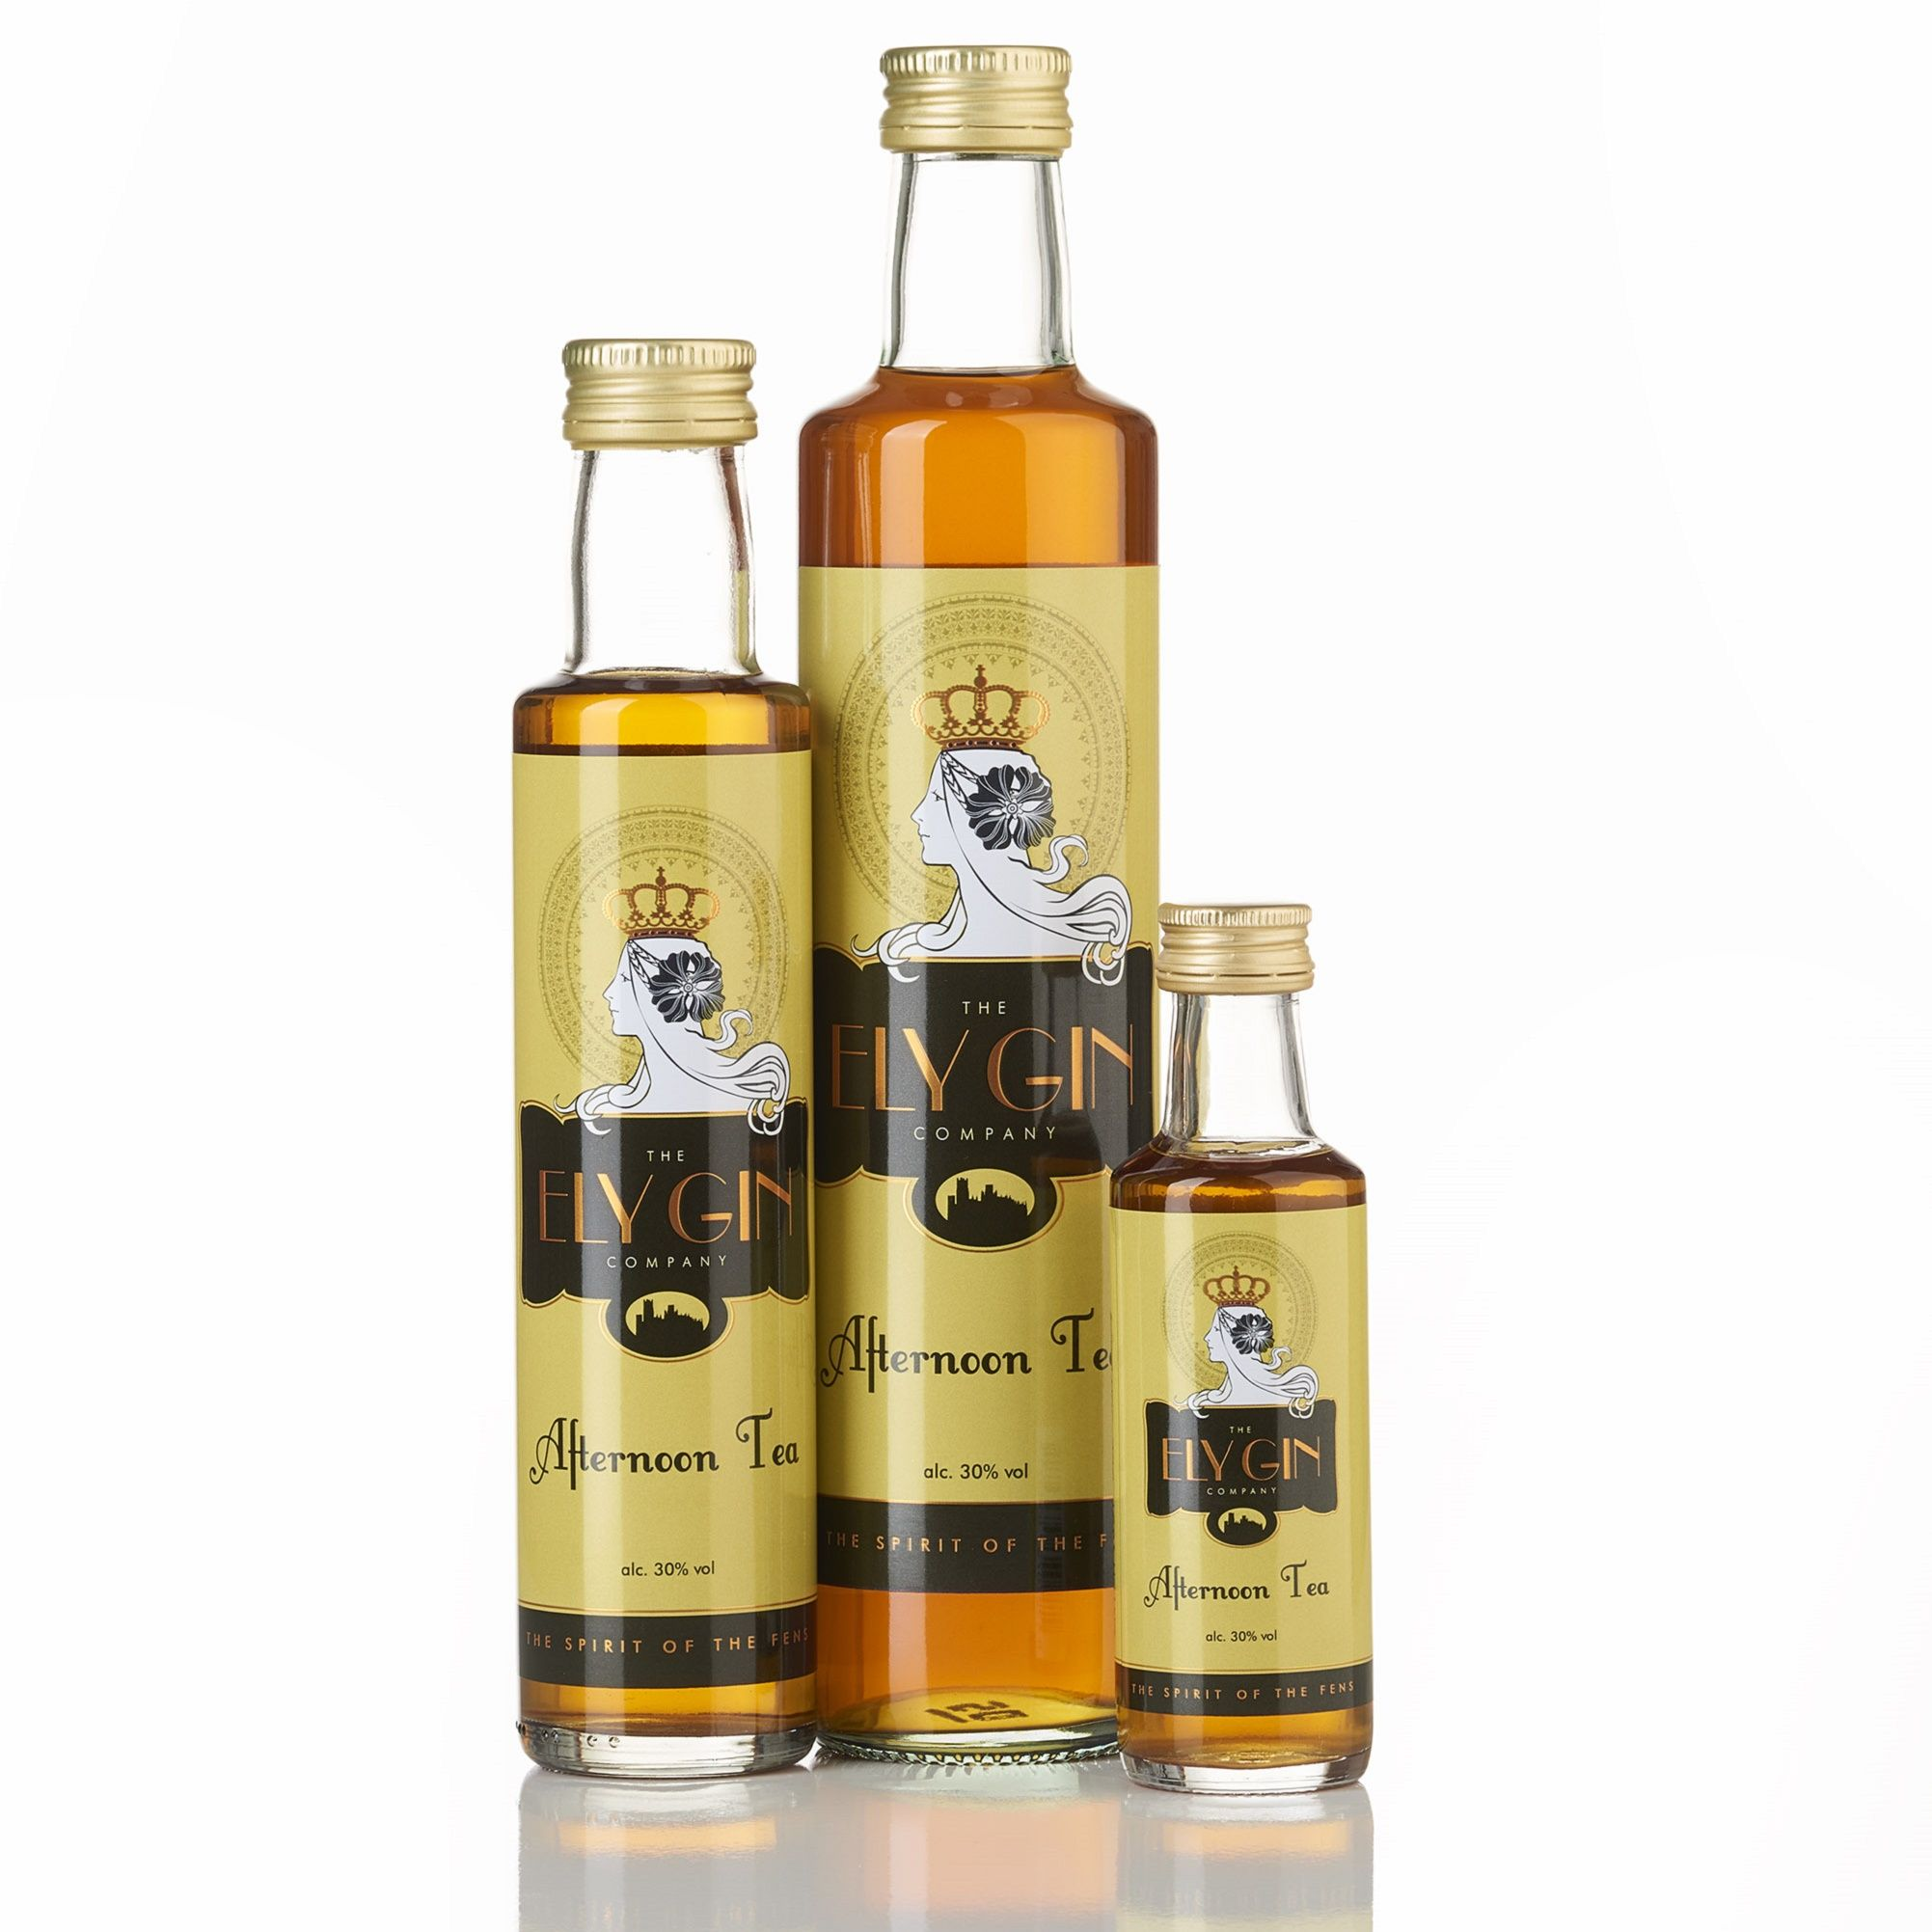 Ely Gin with Afternoon Tea, Gift-wrapping: neutral gift-wrap & tag, Bottle size: 500ml bottle